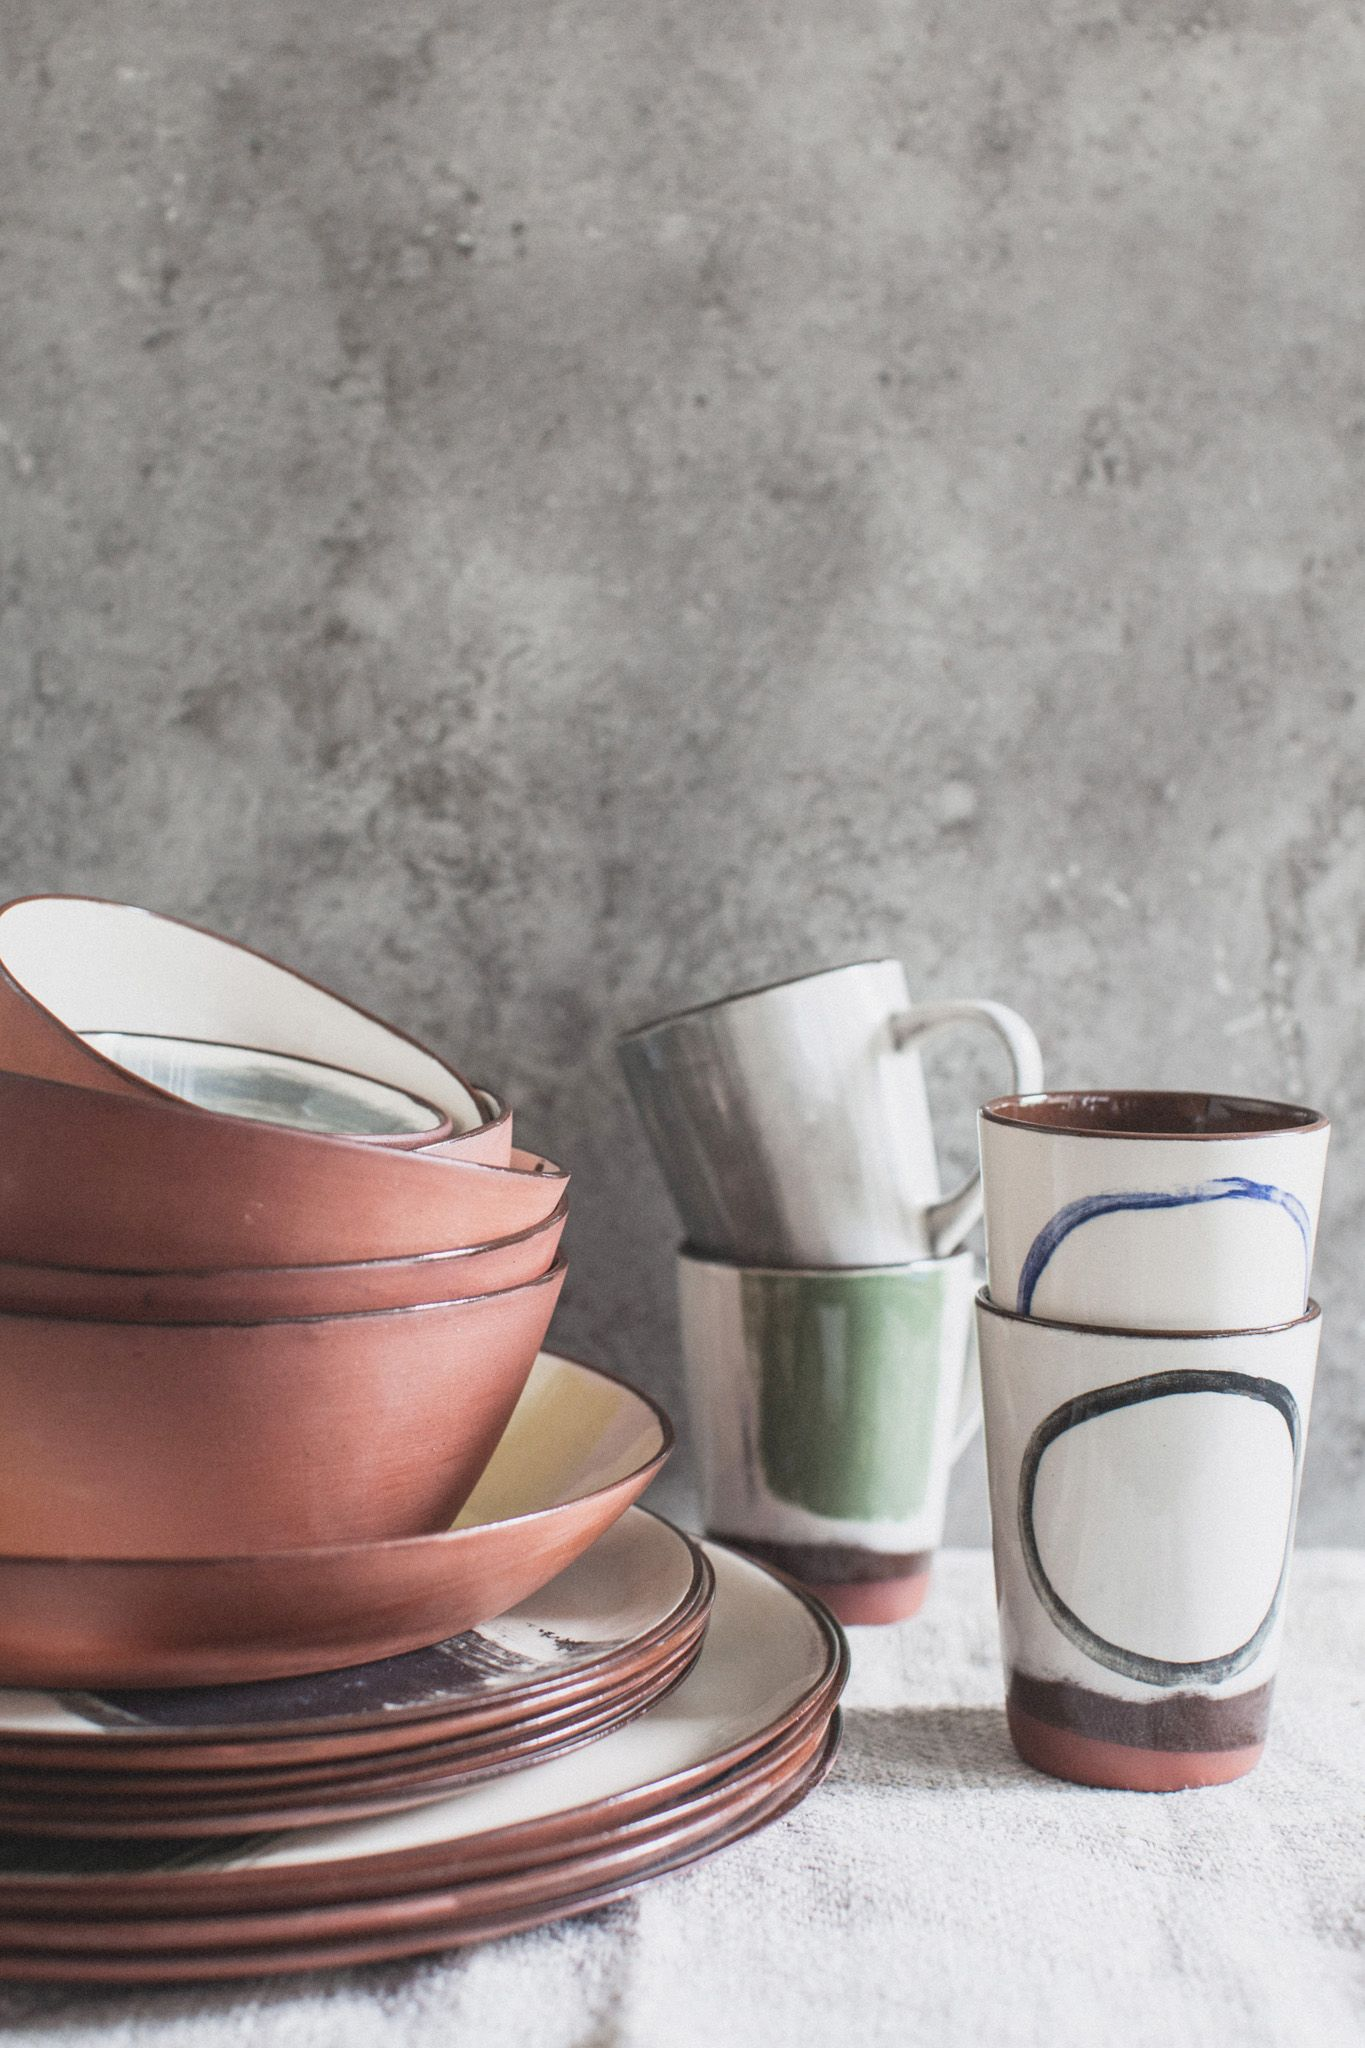 Silvia K Ceramics Tableware Set All The Intellectual Property In These Designs Belongs To Silvia K Ceramics Any Infr Ceramic Tableware New Ceramics Pottery